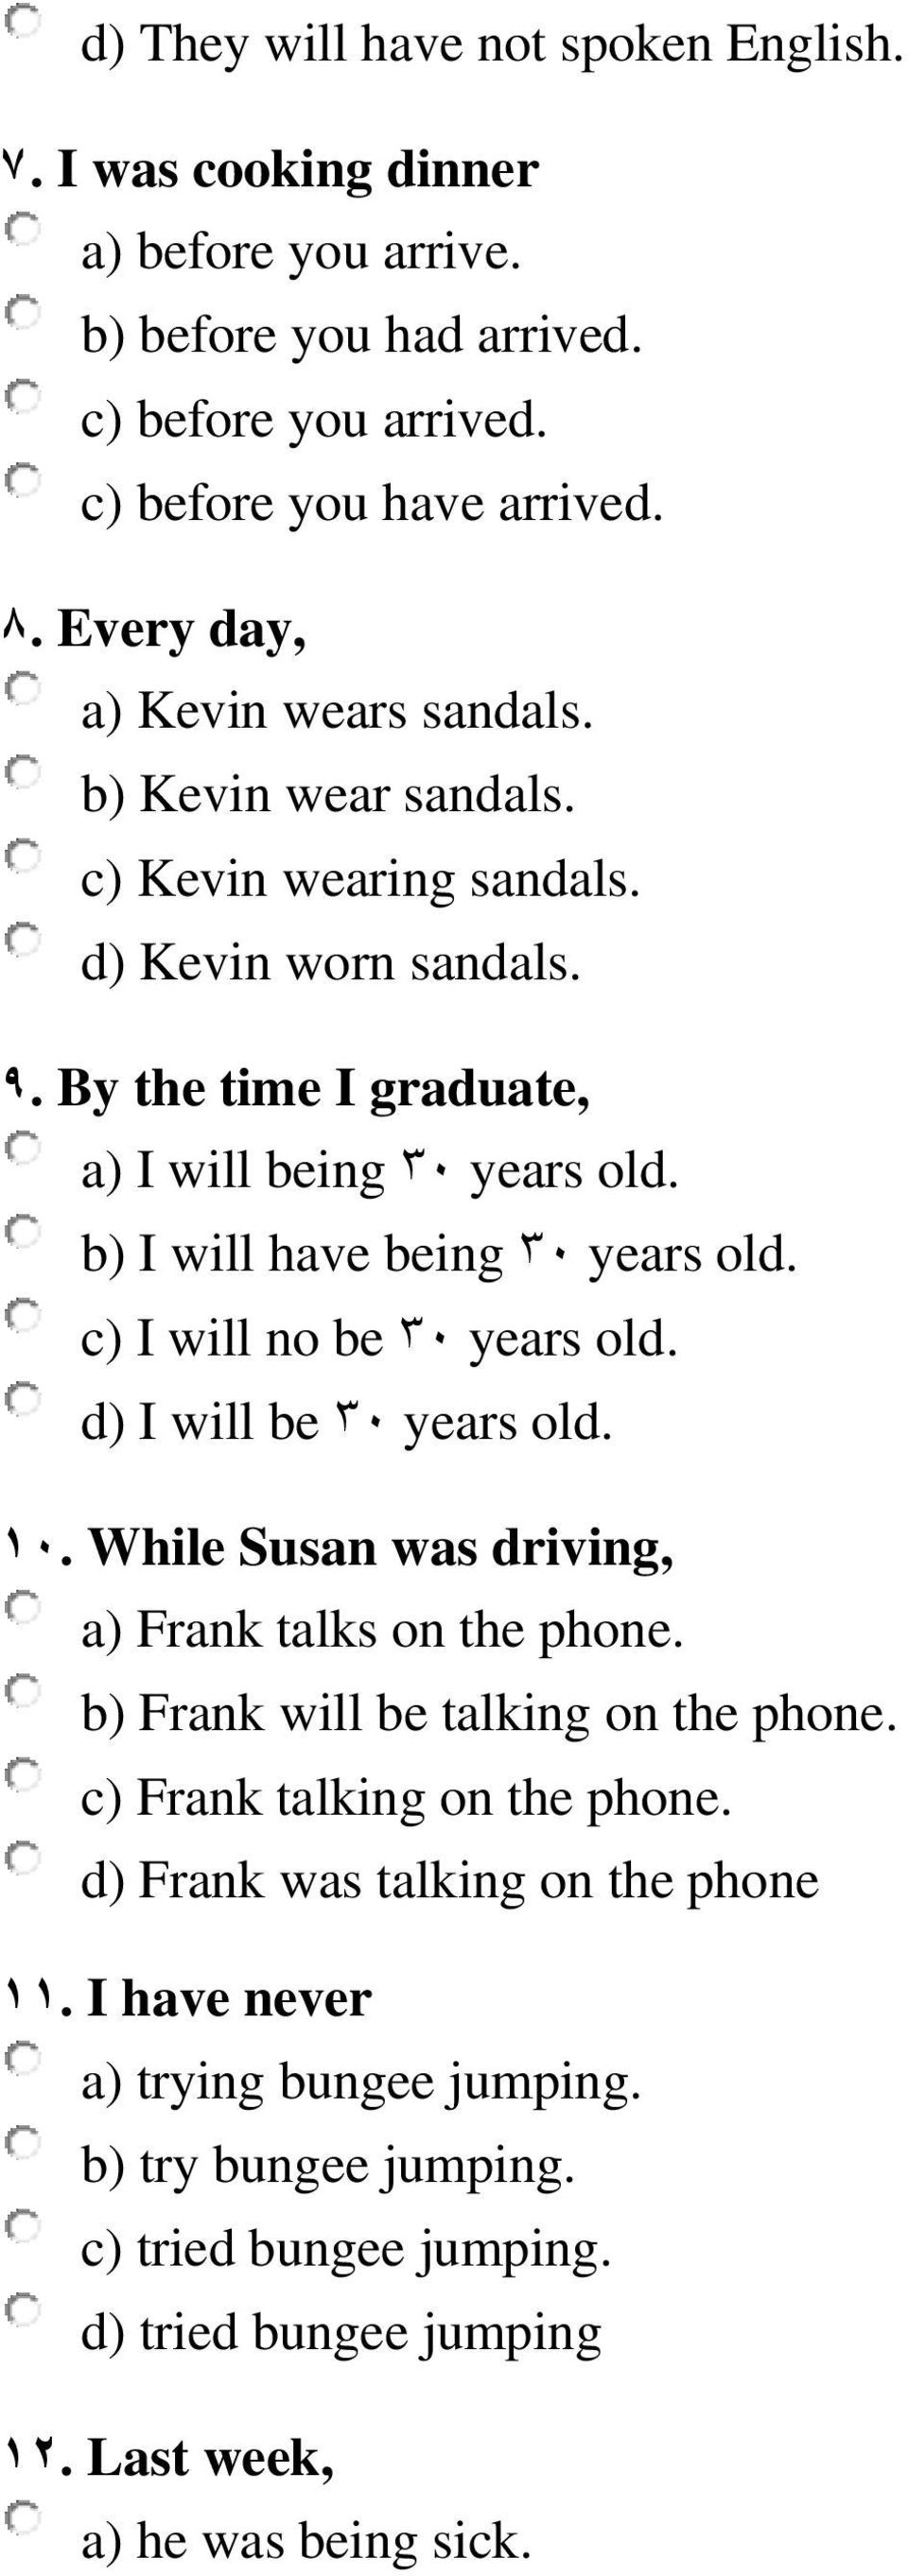 b) I will have being 31 years old. c) I will no be 31 years old. d) I will be 31 years old. 11. While Susan was driving, a) Frank talks on the phone.